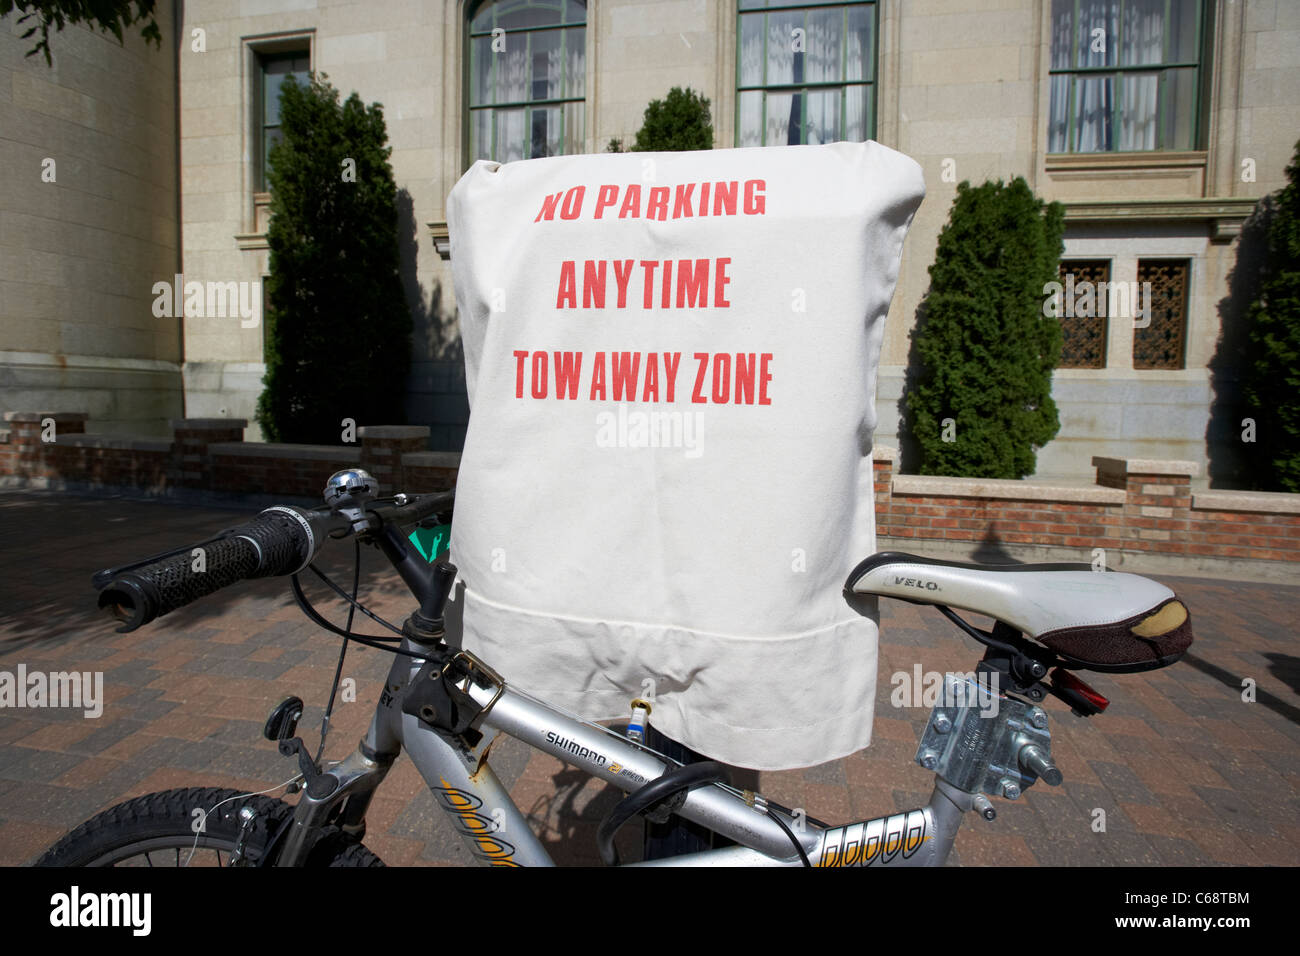 bike locked to no parking anytime tow away zone sign covering out of order parking meters Saskatoon Saskatchewan - Stock Image